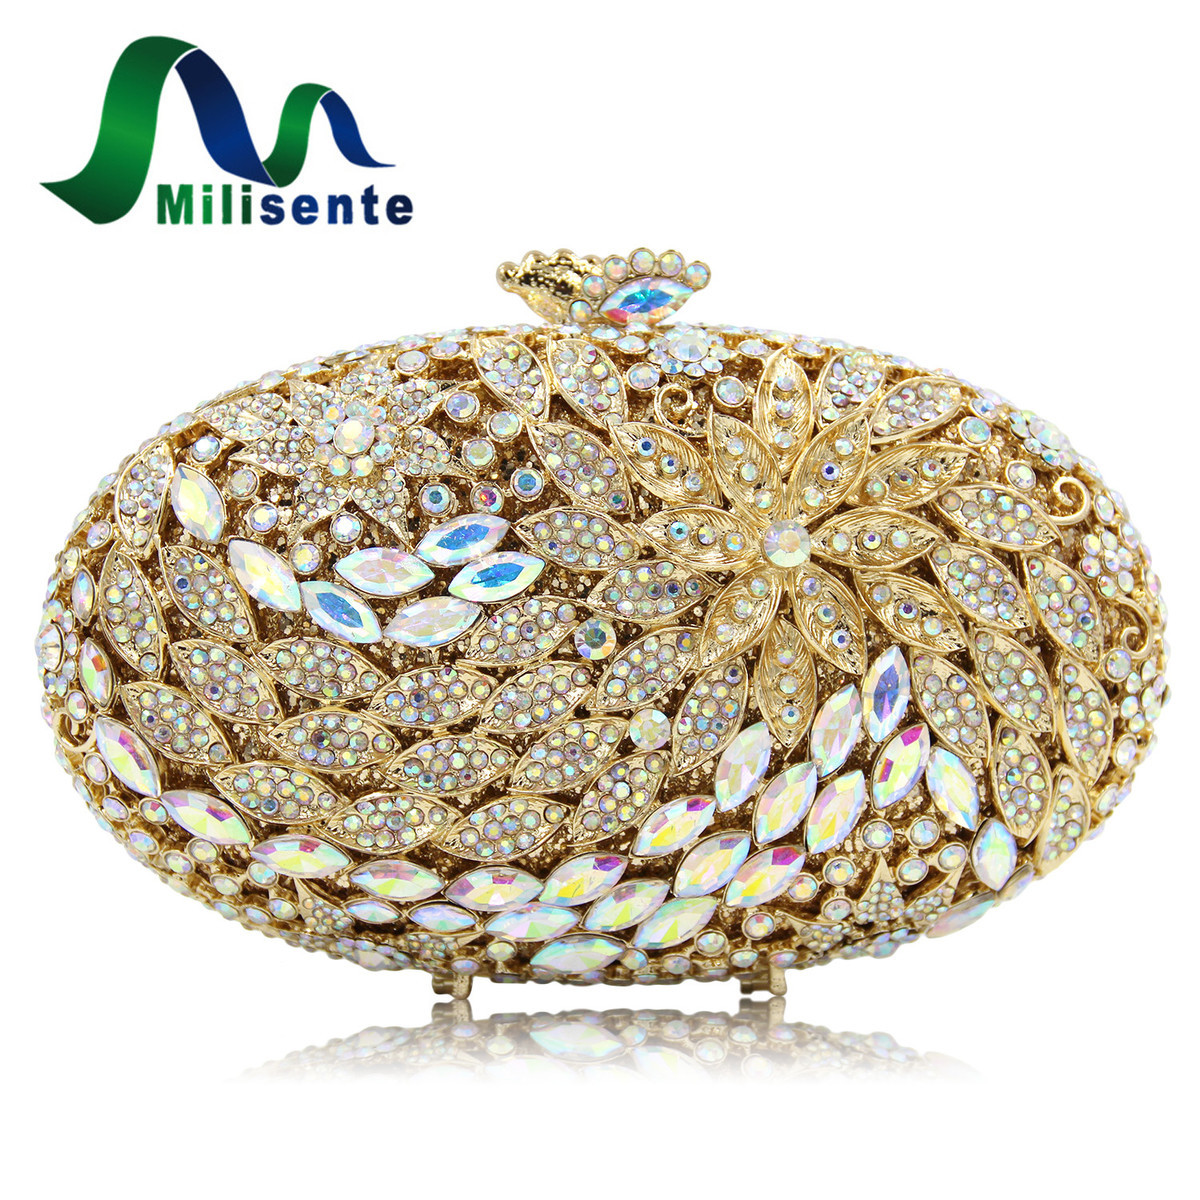 Milisente Women Crystal Clutch Bag Gold Evening Bags Lady Diamond Wedding Clutches Female Party Purses milisente high quality luxury crystal evening bag women wedding purses lady party clutch handbag green blue gold white